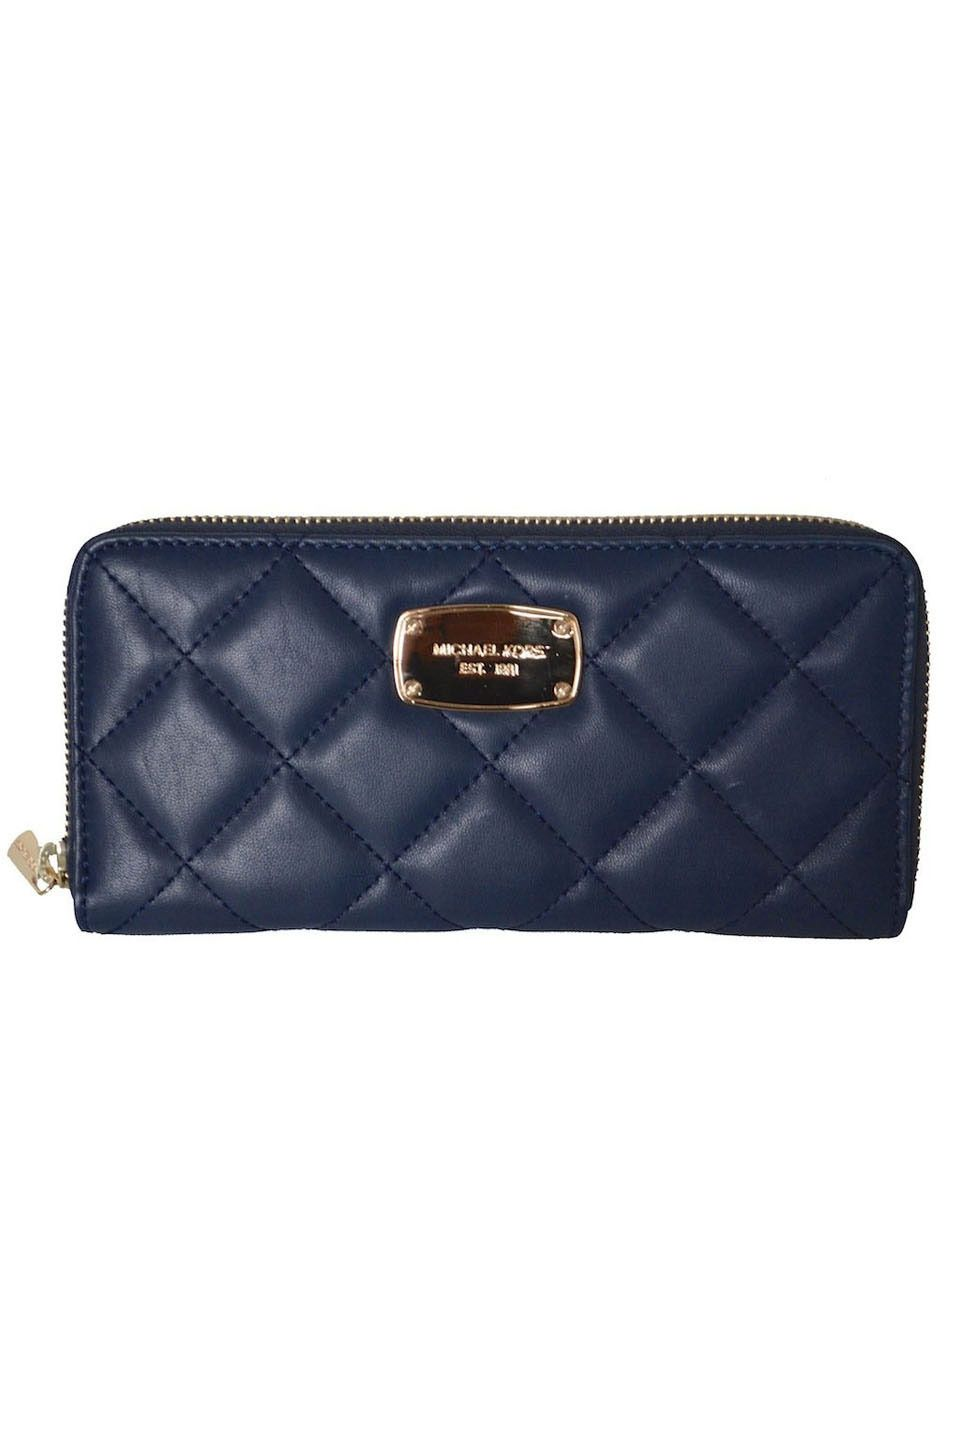 hamilton quilt za continental leather wallet in navy michael kors is rh pinterest com